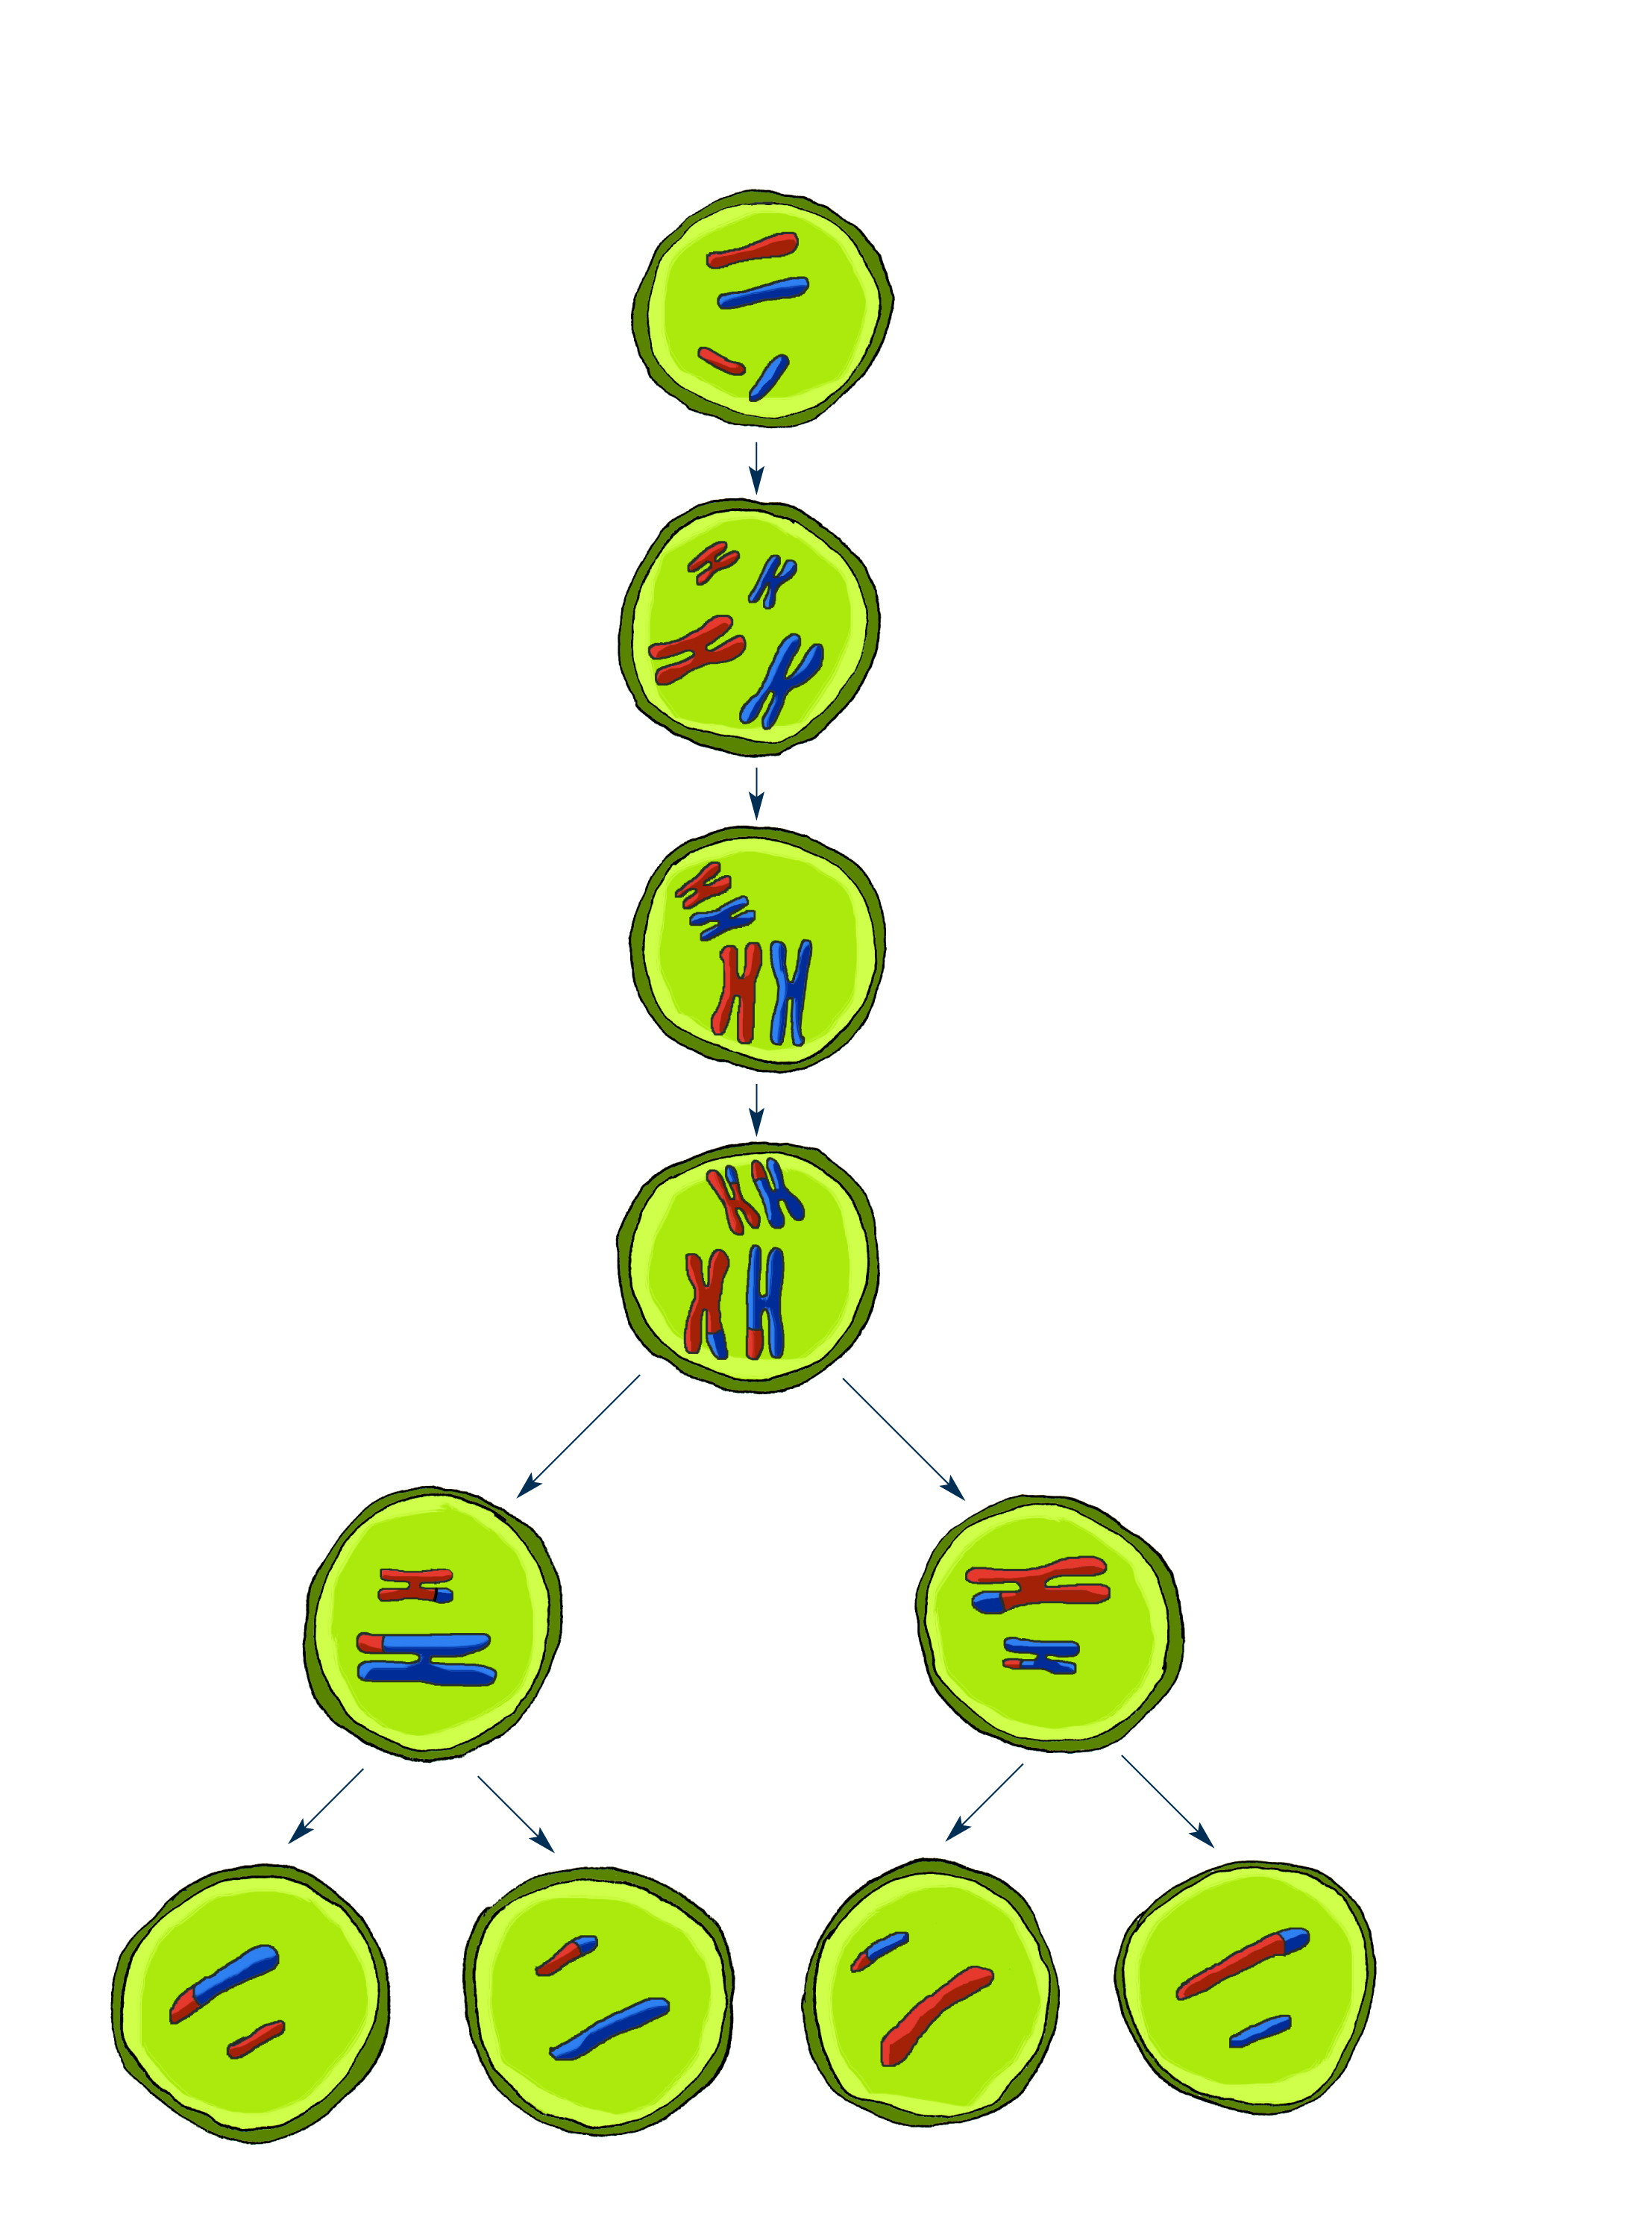 Meiosis For Kids as well Frog Coloring Book Tree Frog Coloring Pages Printable Frogs Tree Frog Coloring Pages Printable Frogs Frog Template Images Pepe The Frog Coloring Book likewise Chemistry Of Life Vocabulary Practice Chapter 2 Answers Chapter 3 The Biosphere Answer Key Nuclear Chemistry Half Life Worksheet Answers furthermore 544231936193221544 in addition 420101471462205152. on life cycle flip book